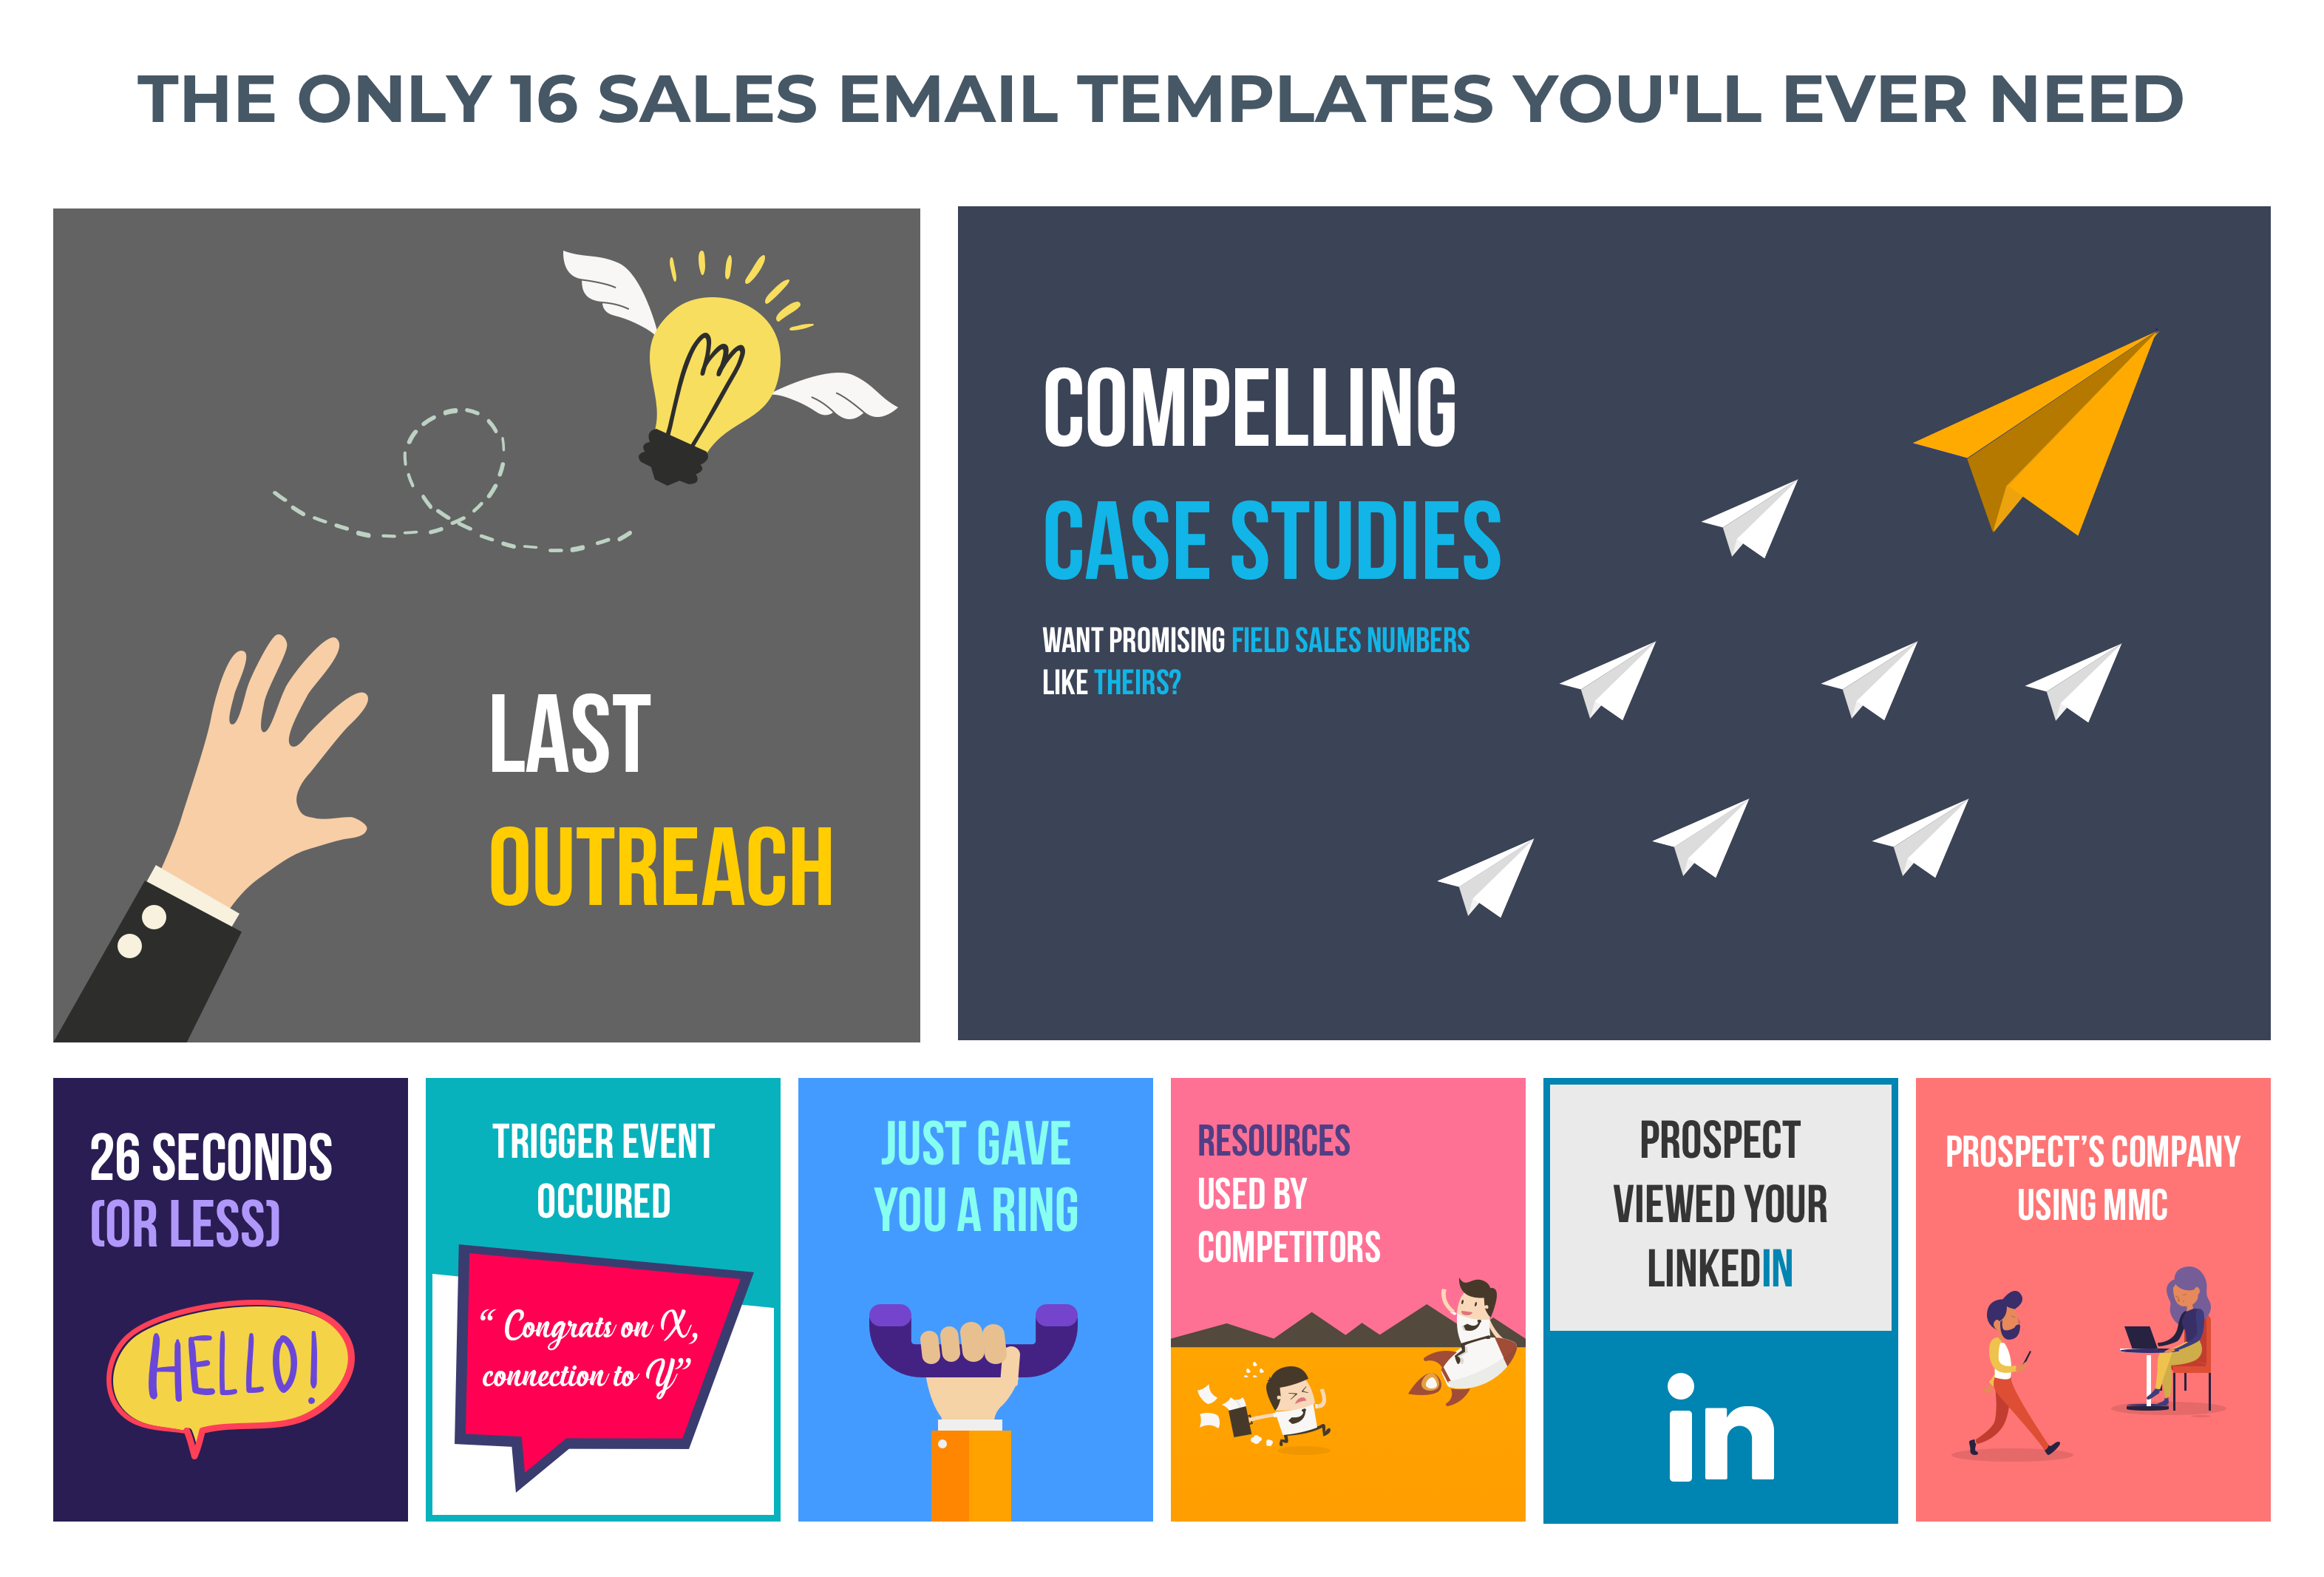 Sales prospecting emails: 4 great examples.